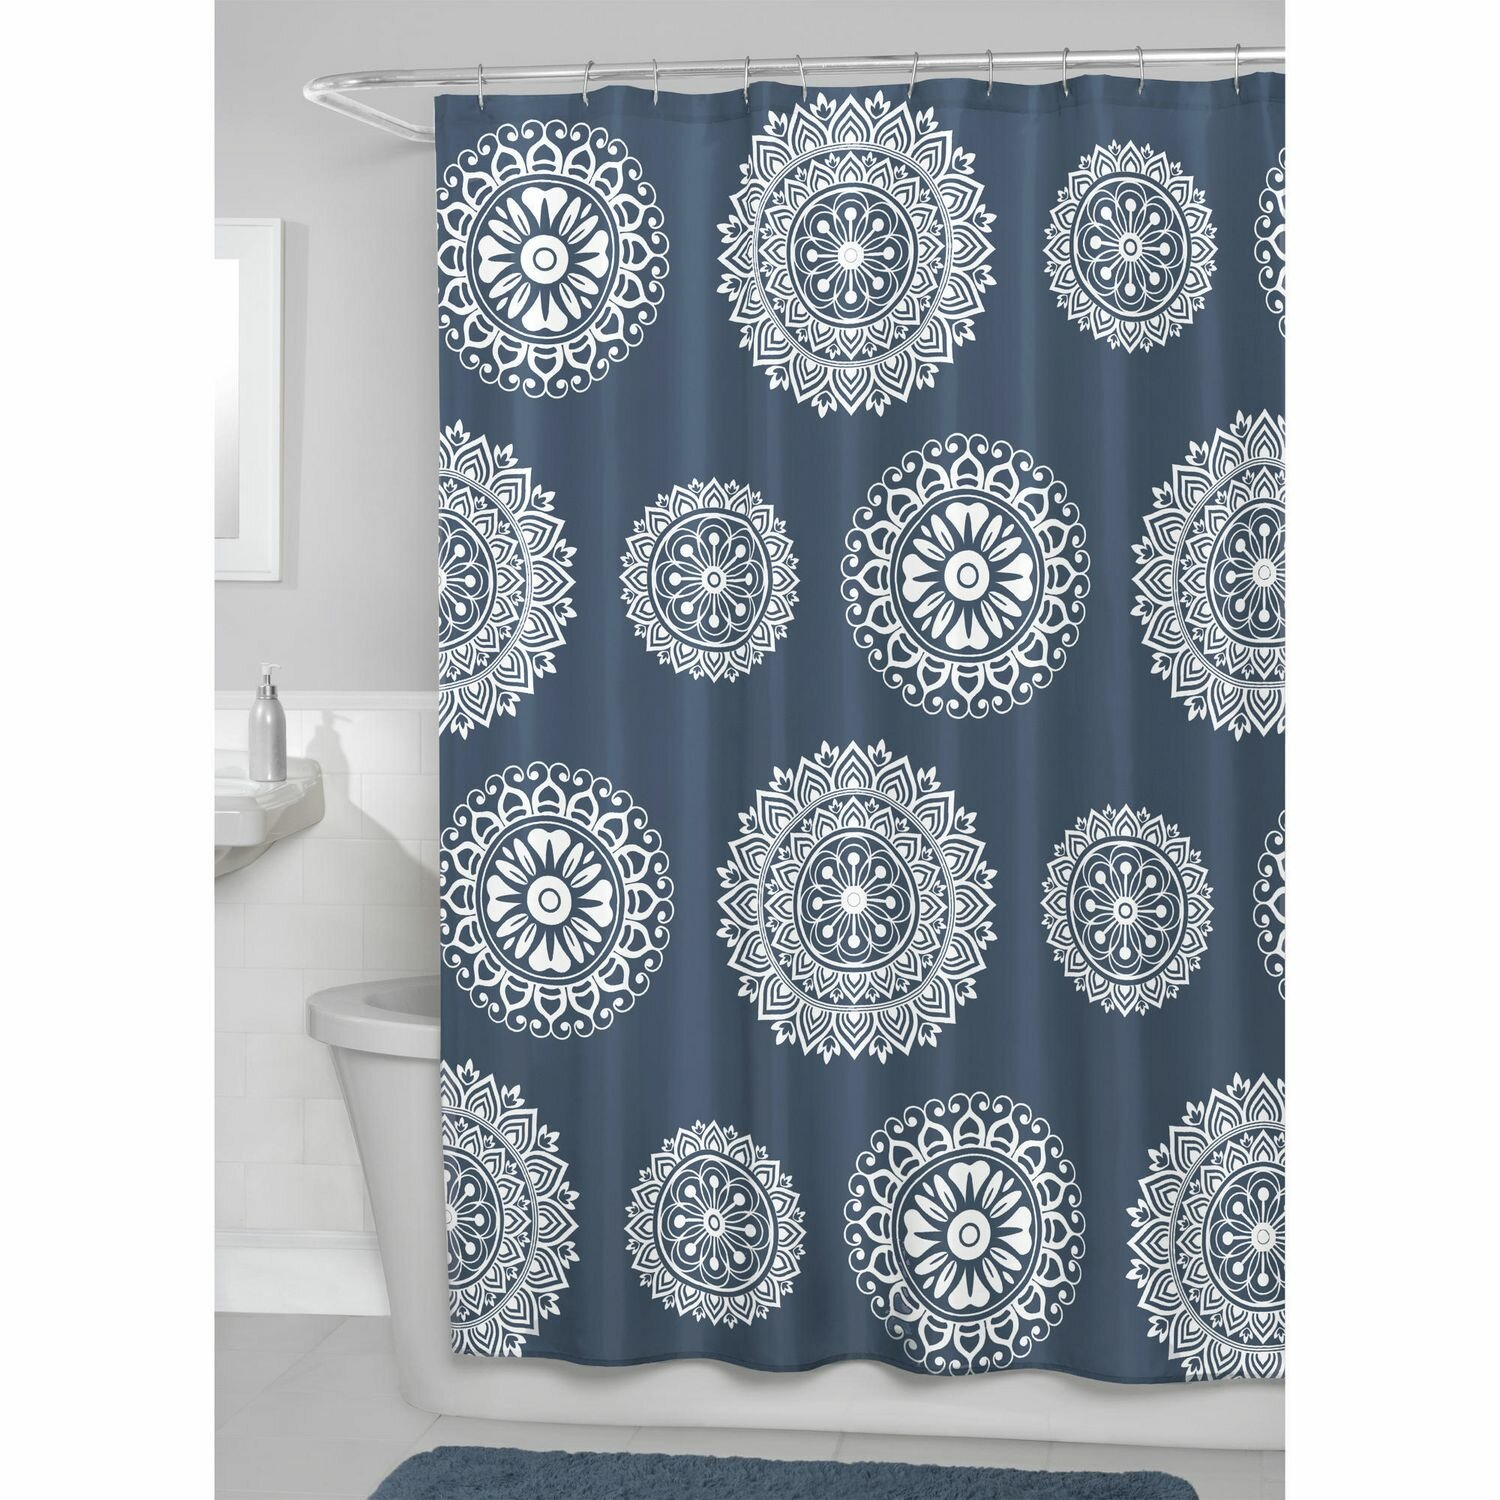 Shower Curtains Target | Walmart Shower Curtain | Shower Curtains In Walmart